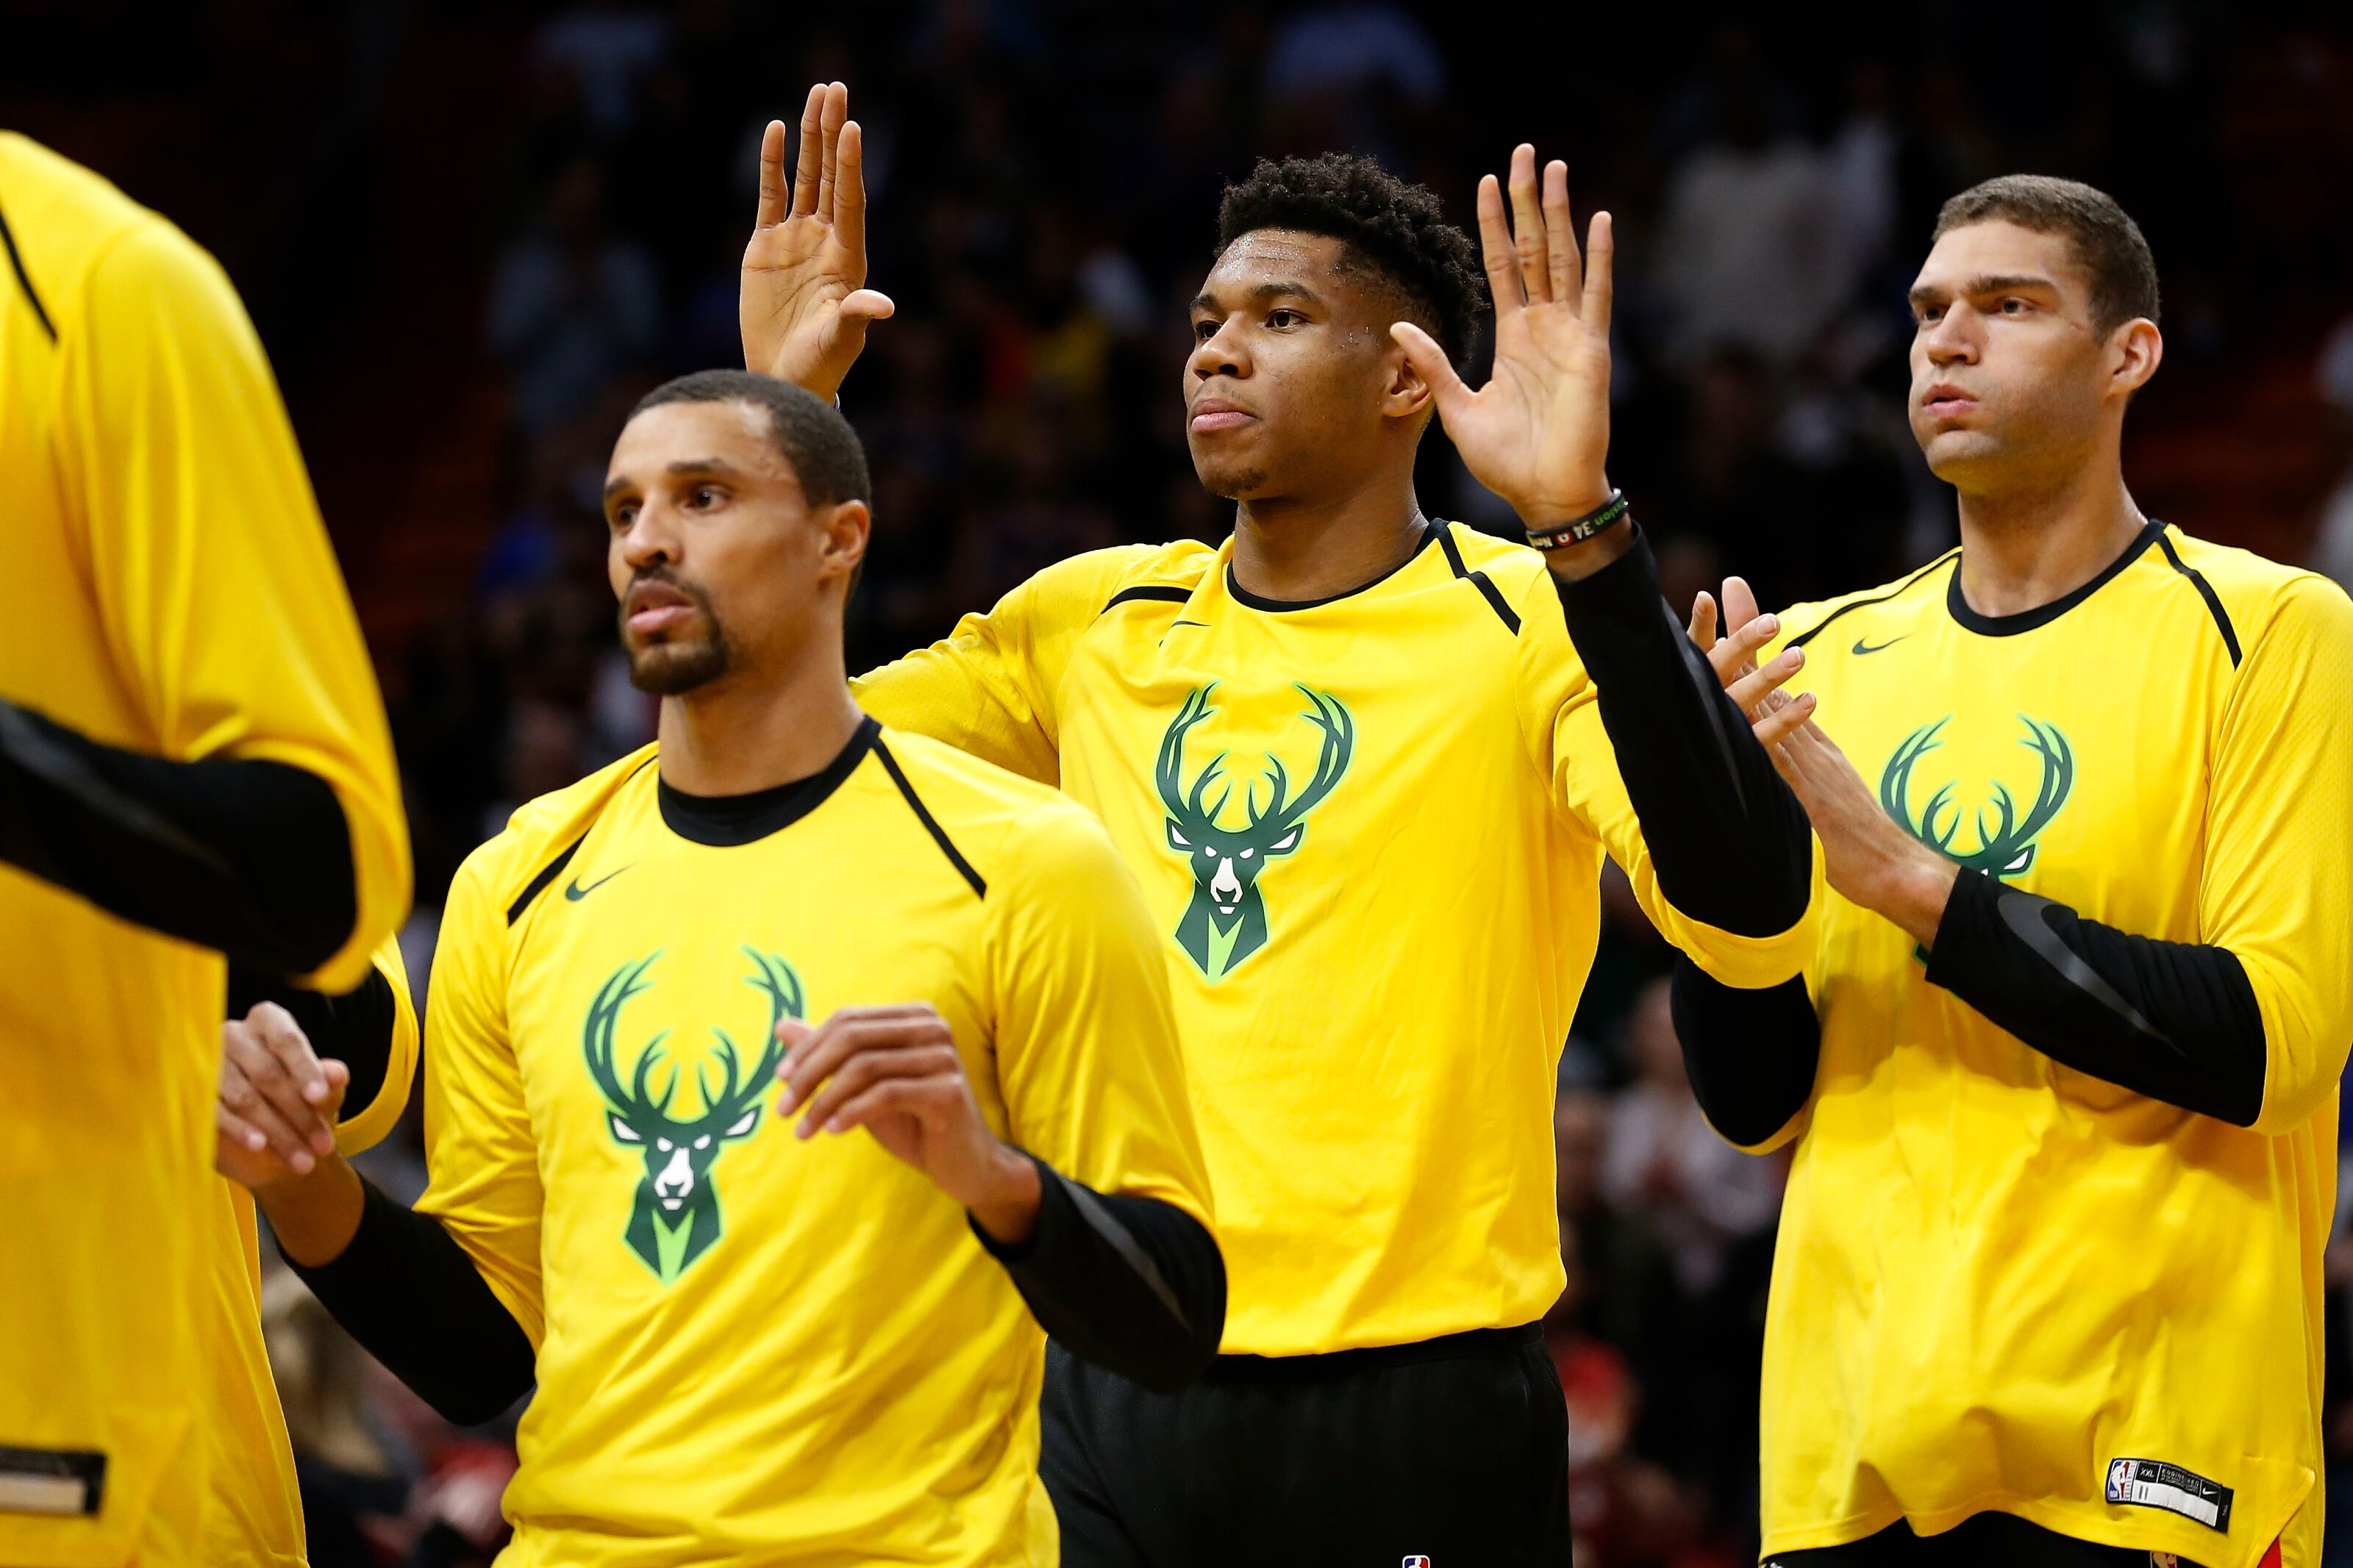 a8358d27067e Milwaukee Bucks  Giannis Antetokounmpo officially named All-Star captain